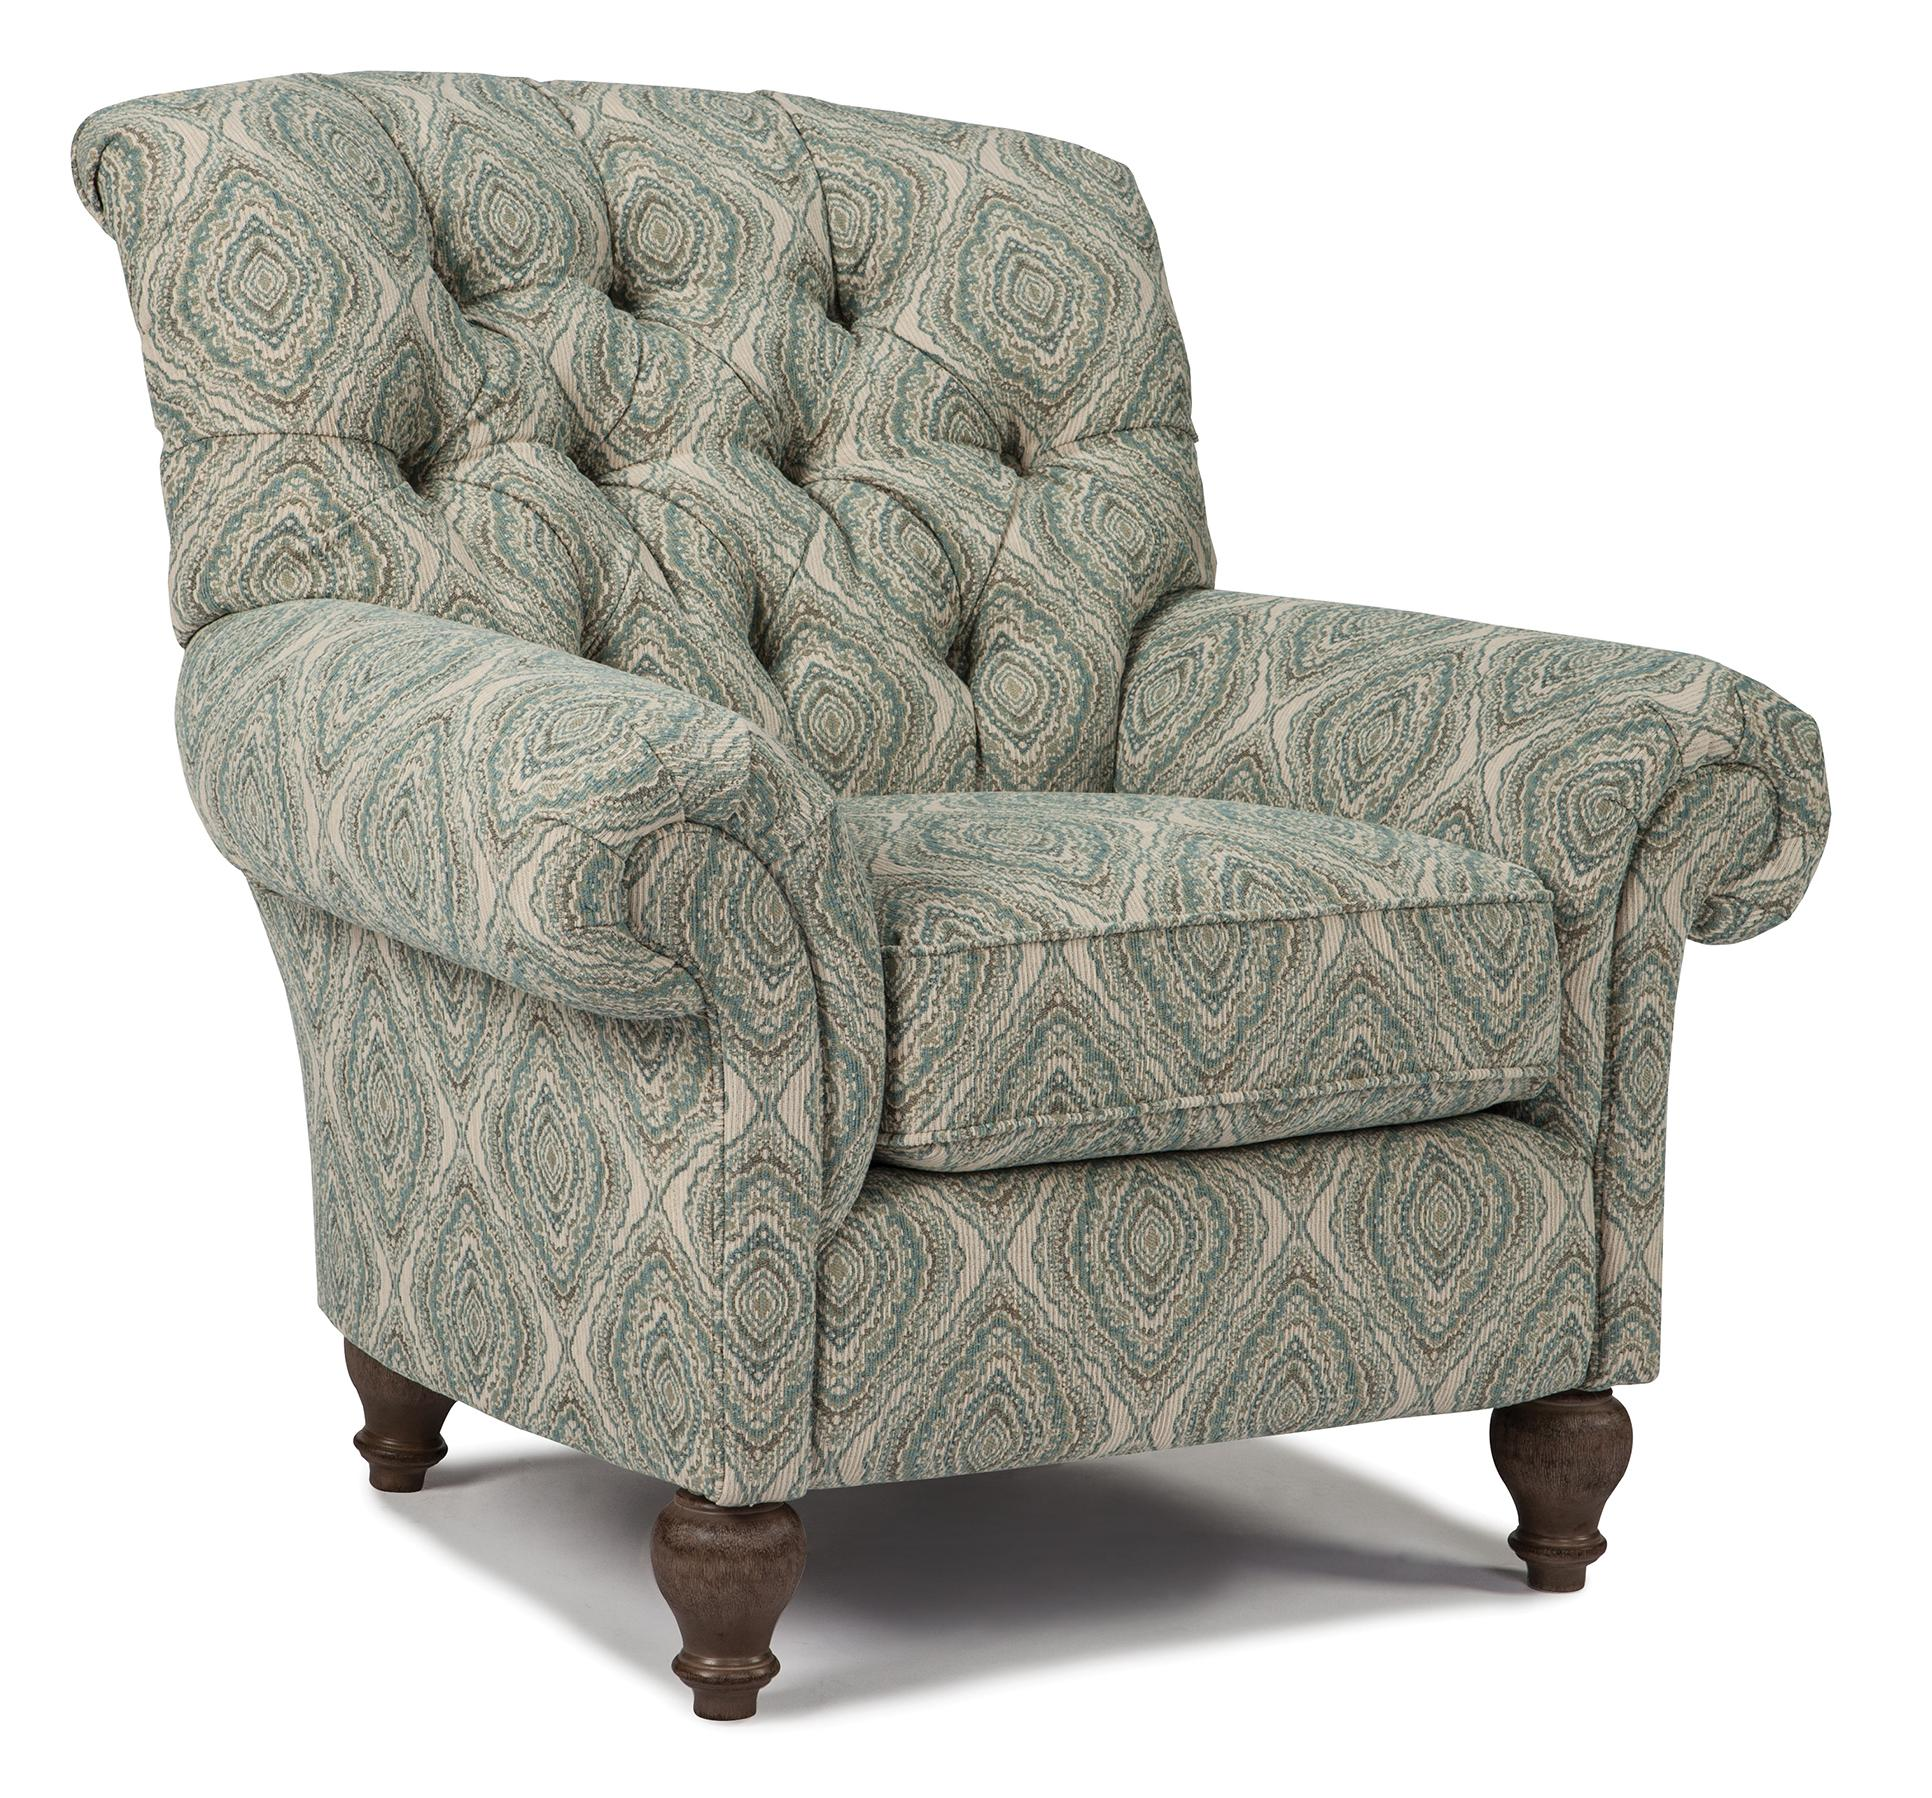 Charmant Best Home Furnishings Club Chairs Christabel Club Chair   Item Number: 7010